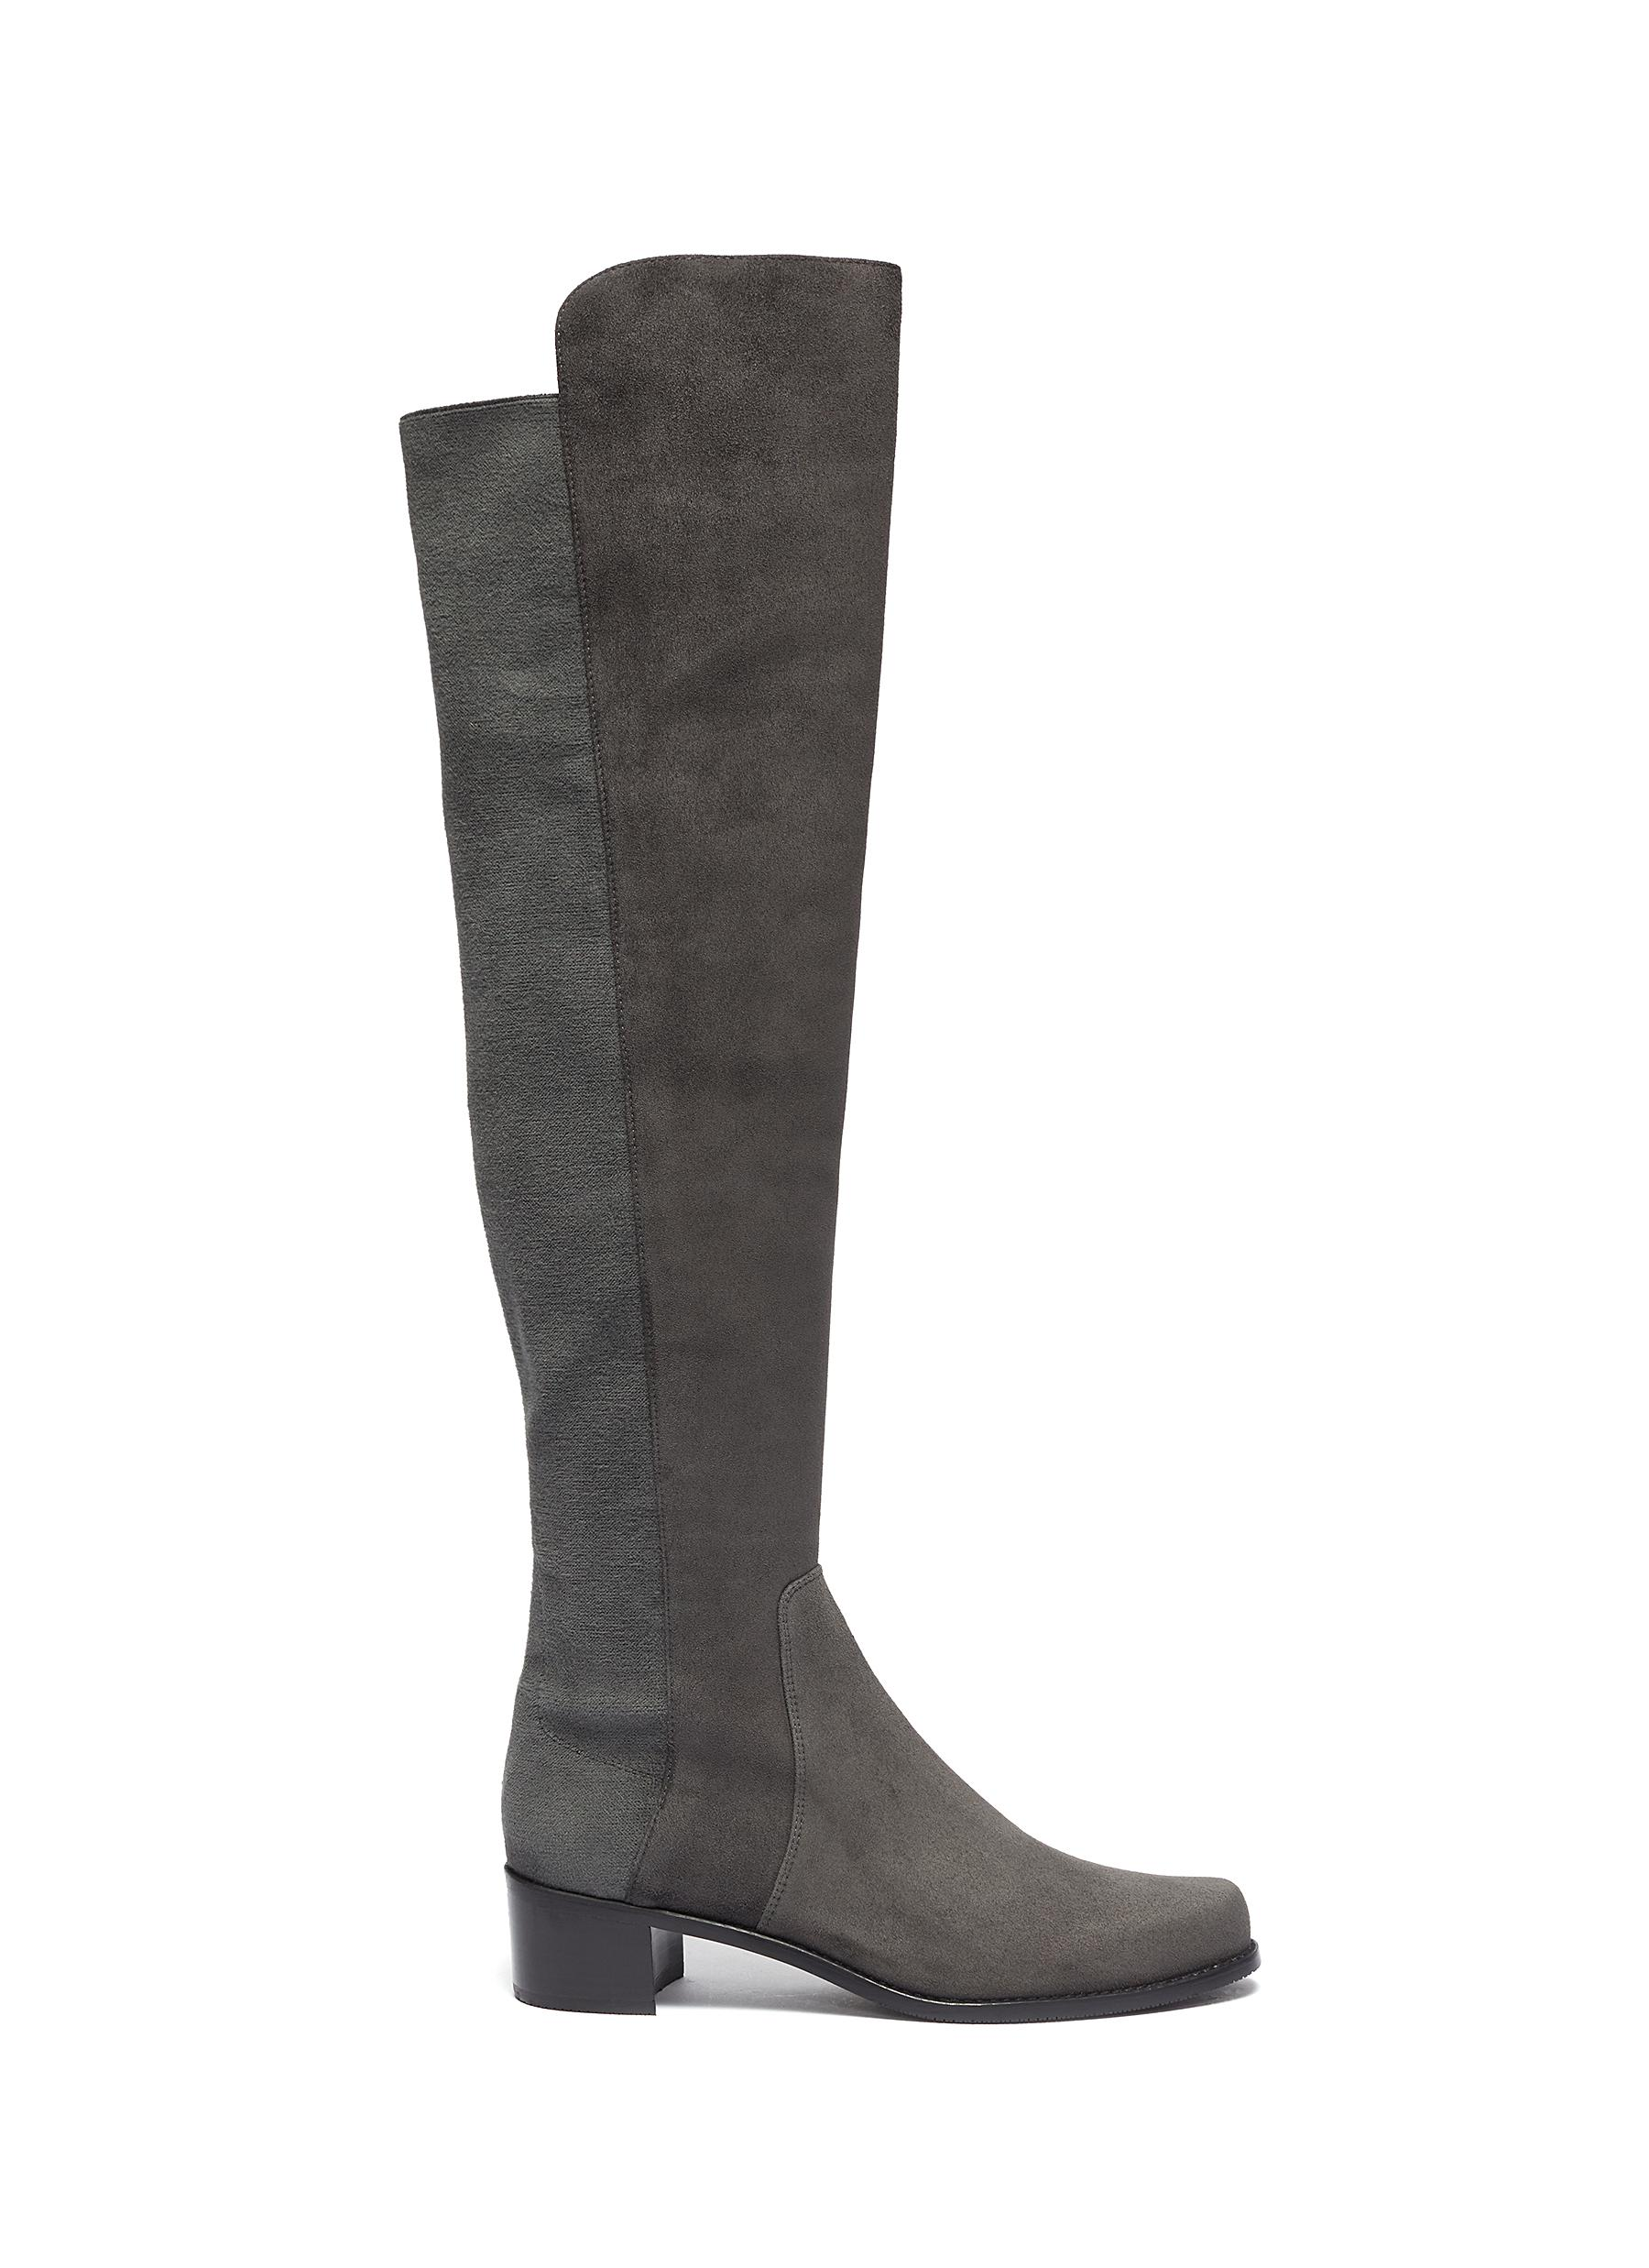 Reserve panelled stretch suede knee high boots by Stuart Weitzman